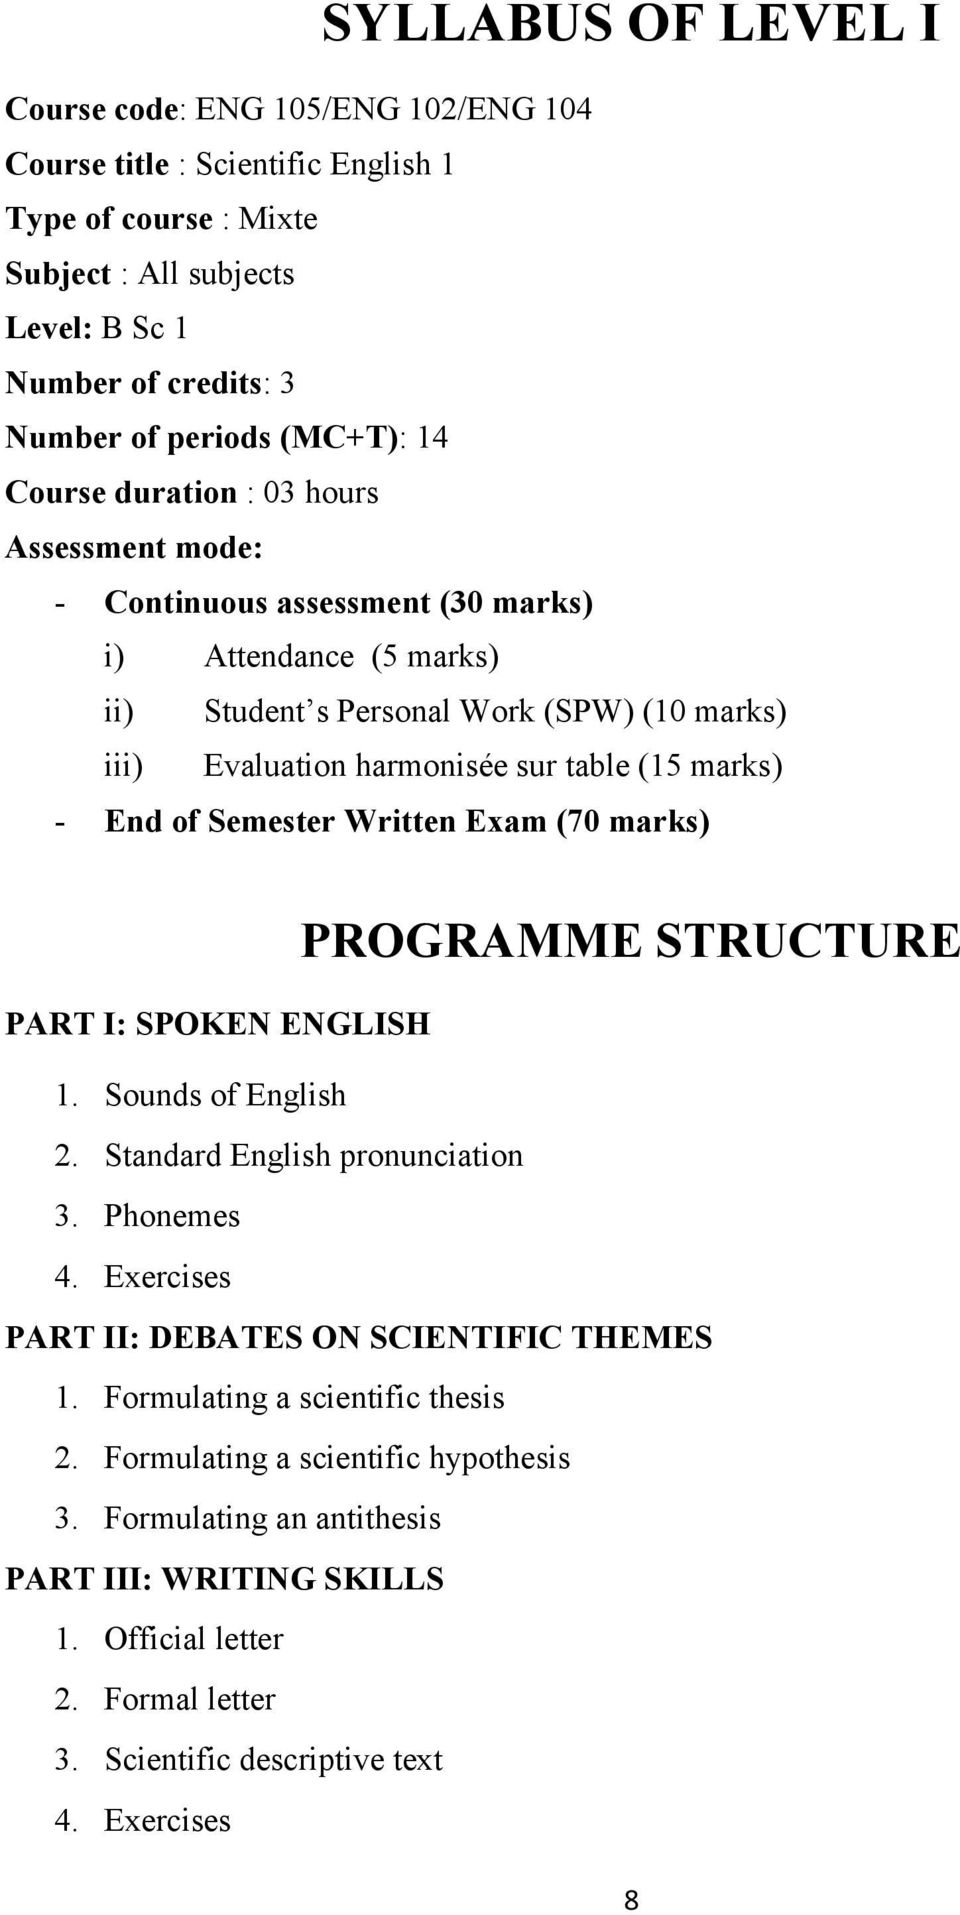 - End of Semester Written Exam (70 marks) PROGRAMME STRUCTURE PART I: SPOKEN ENGLISH 1. Sounds of English 2. Standard English pronunciation 3. Phonemes 4.